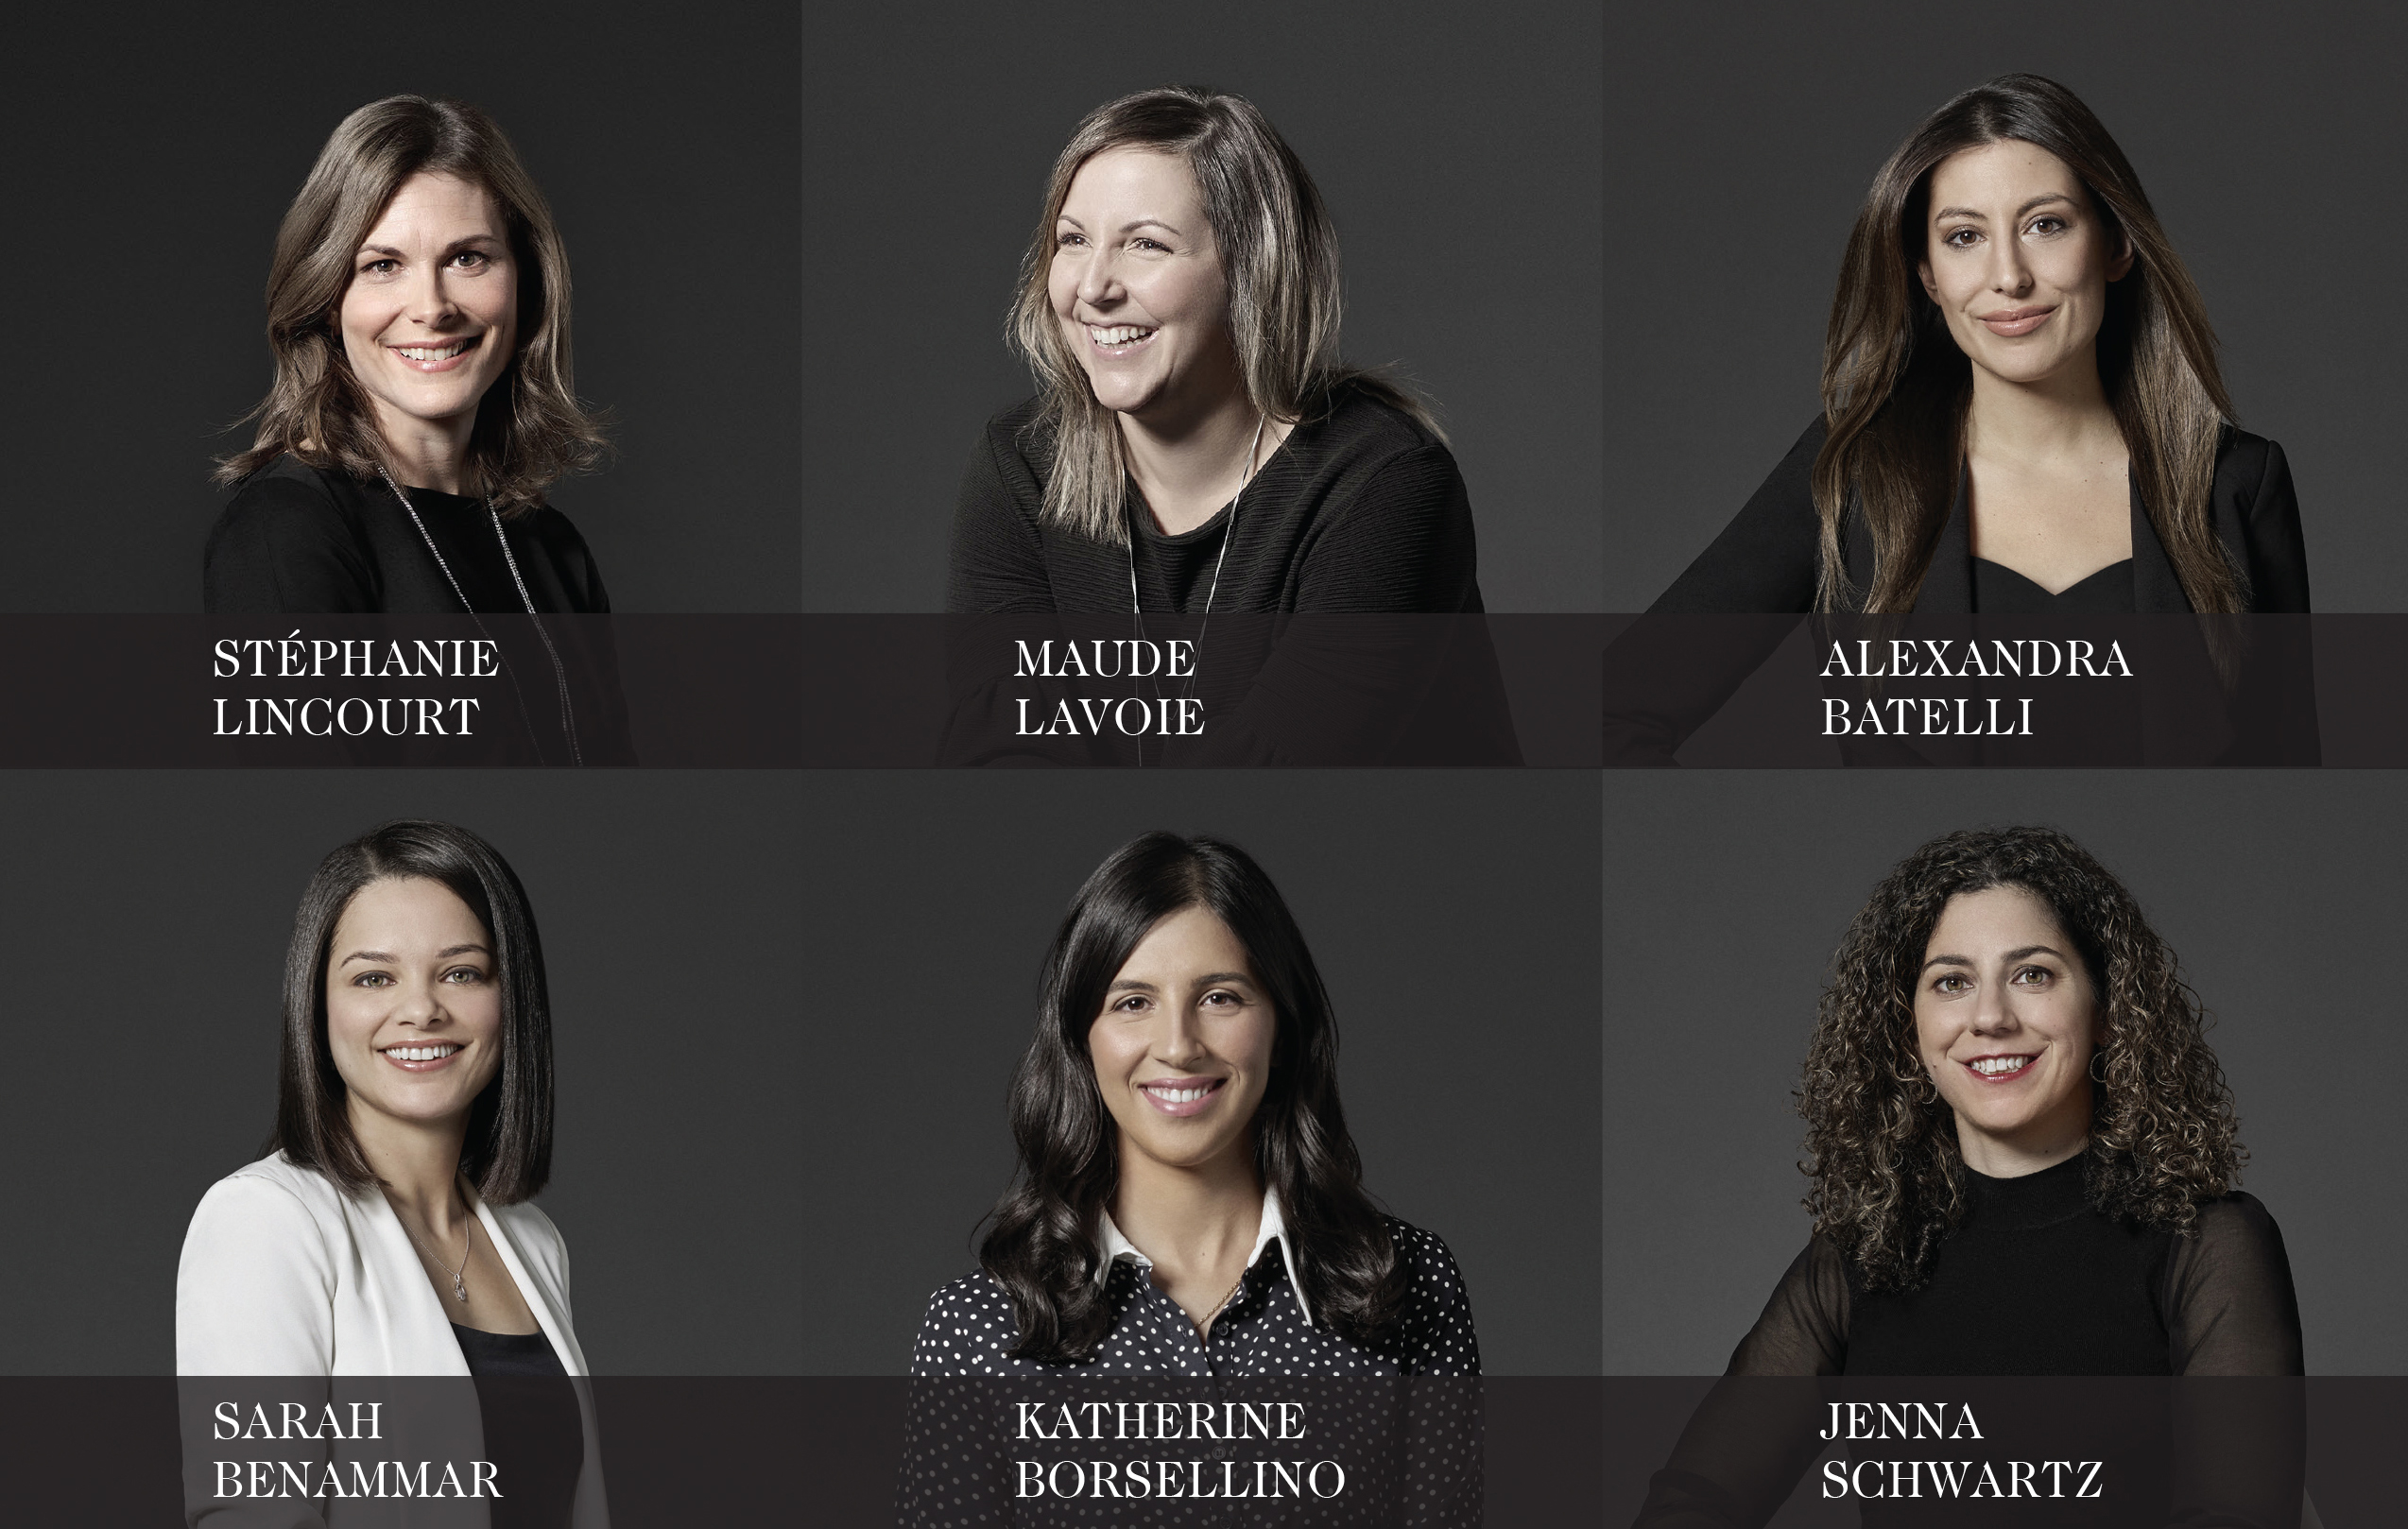 portraits of 6 Richter team members who are focused on real estate